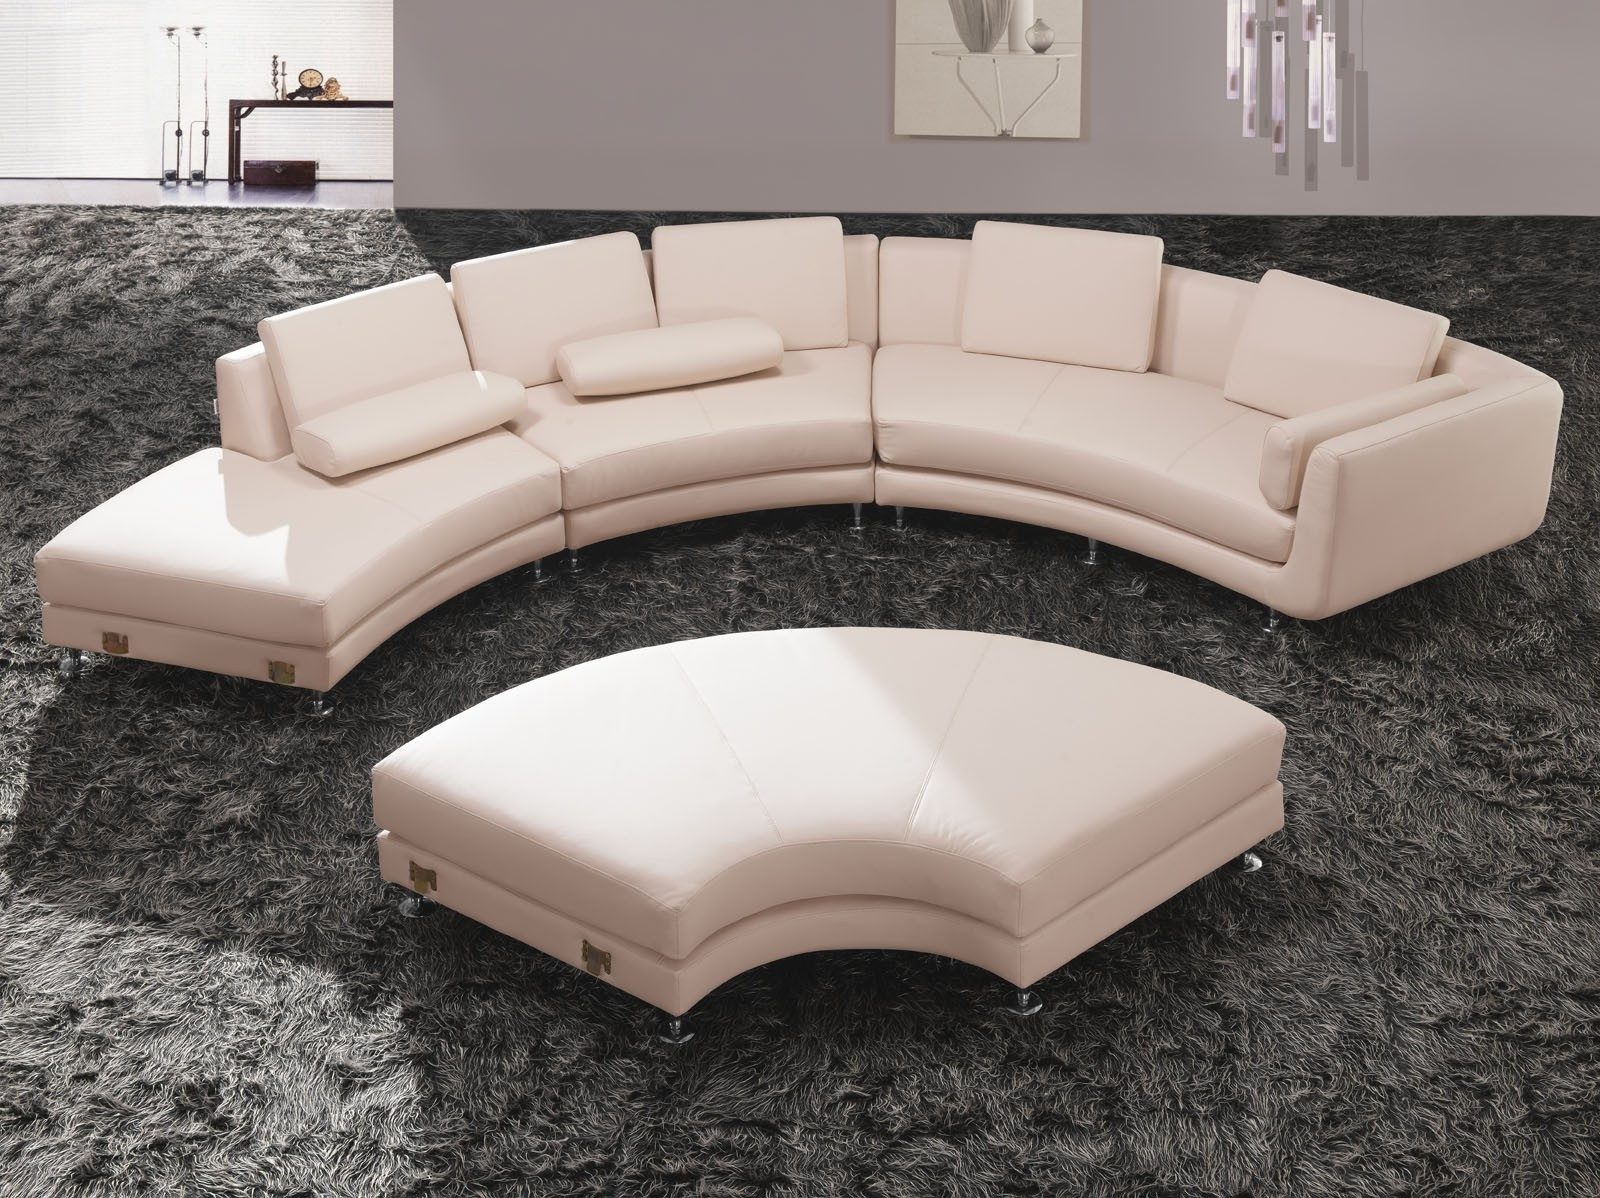 Well Liked Curved Sectional Sofas With Recliner With Living Room: Microfiber Recliner Sofas – Tips For A Buyer (View 14 of 15)